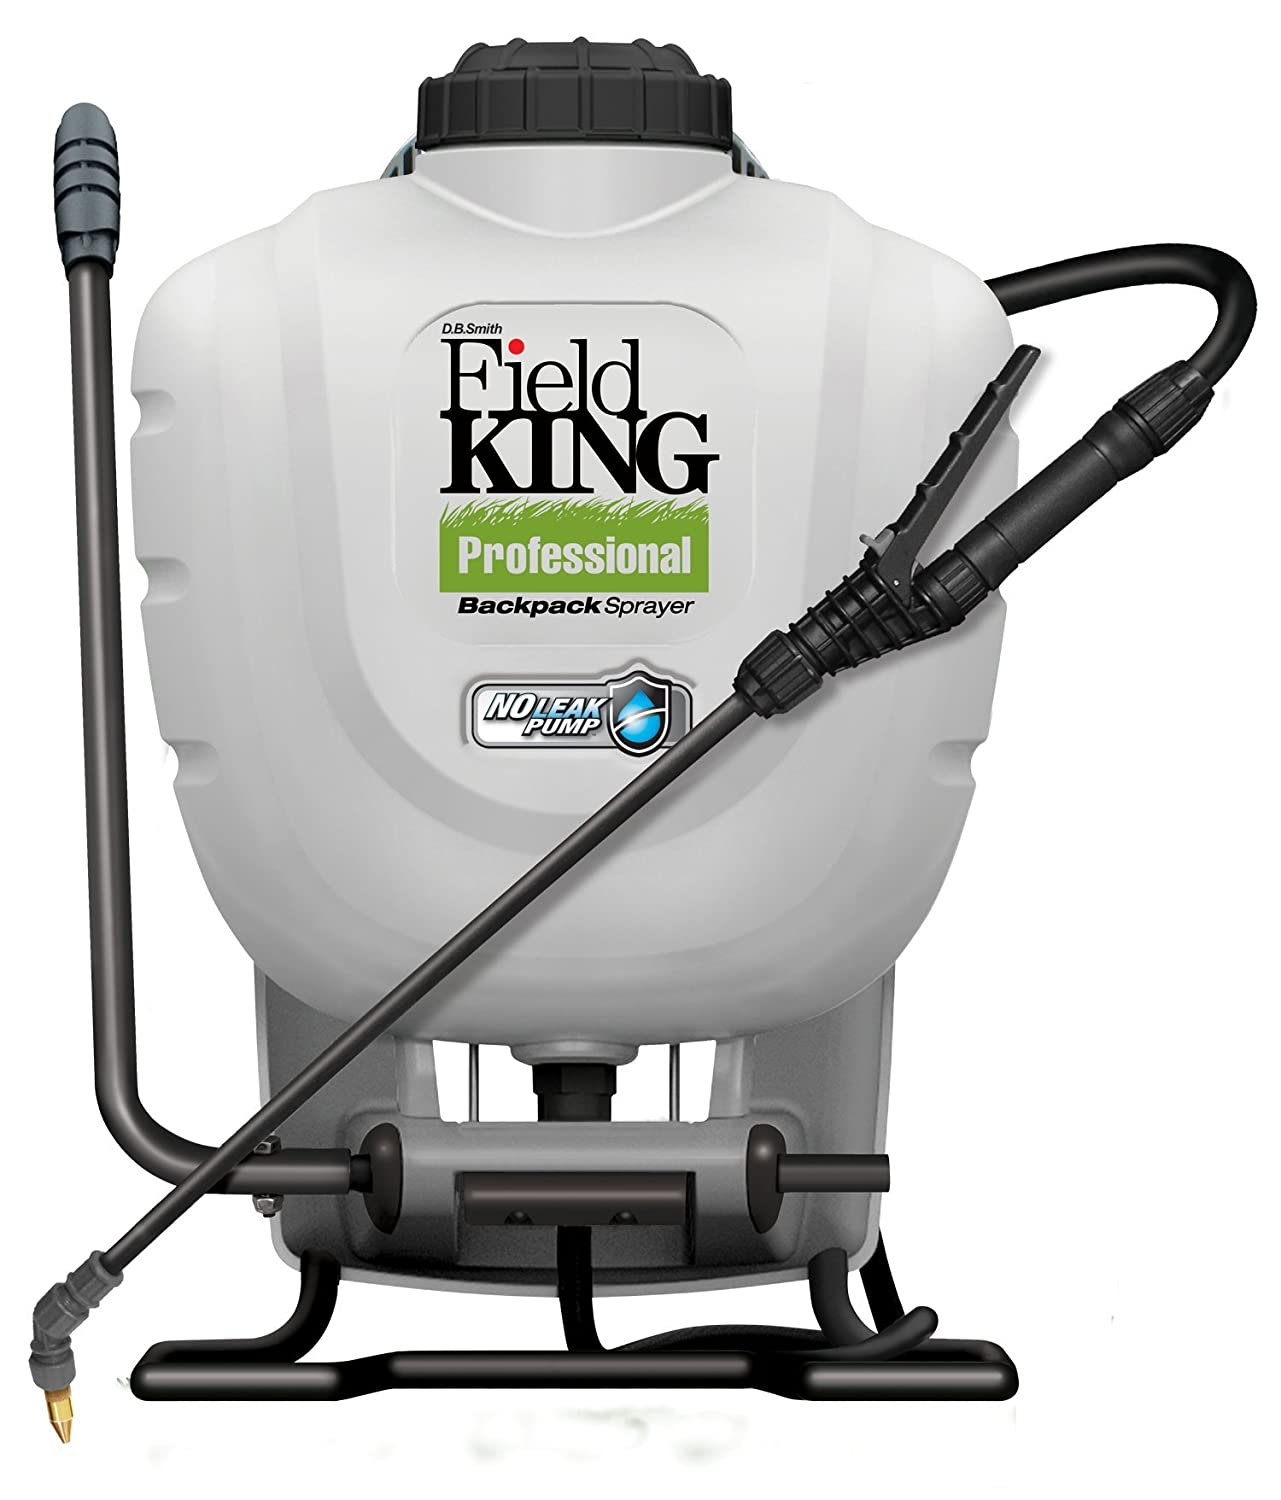 Field King Professional 190328 No Leak Pump Backpack Sprayer for Killing Weeds in Lawns and Gardens